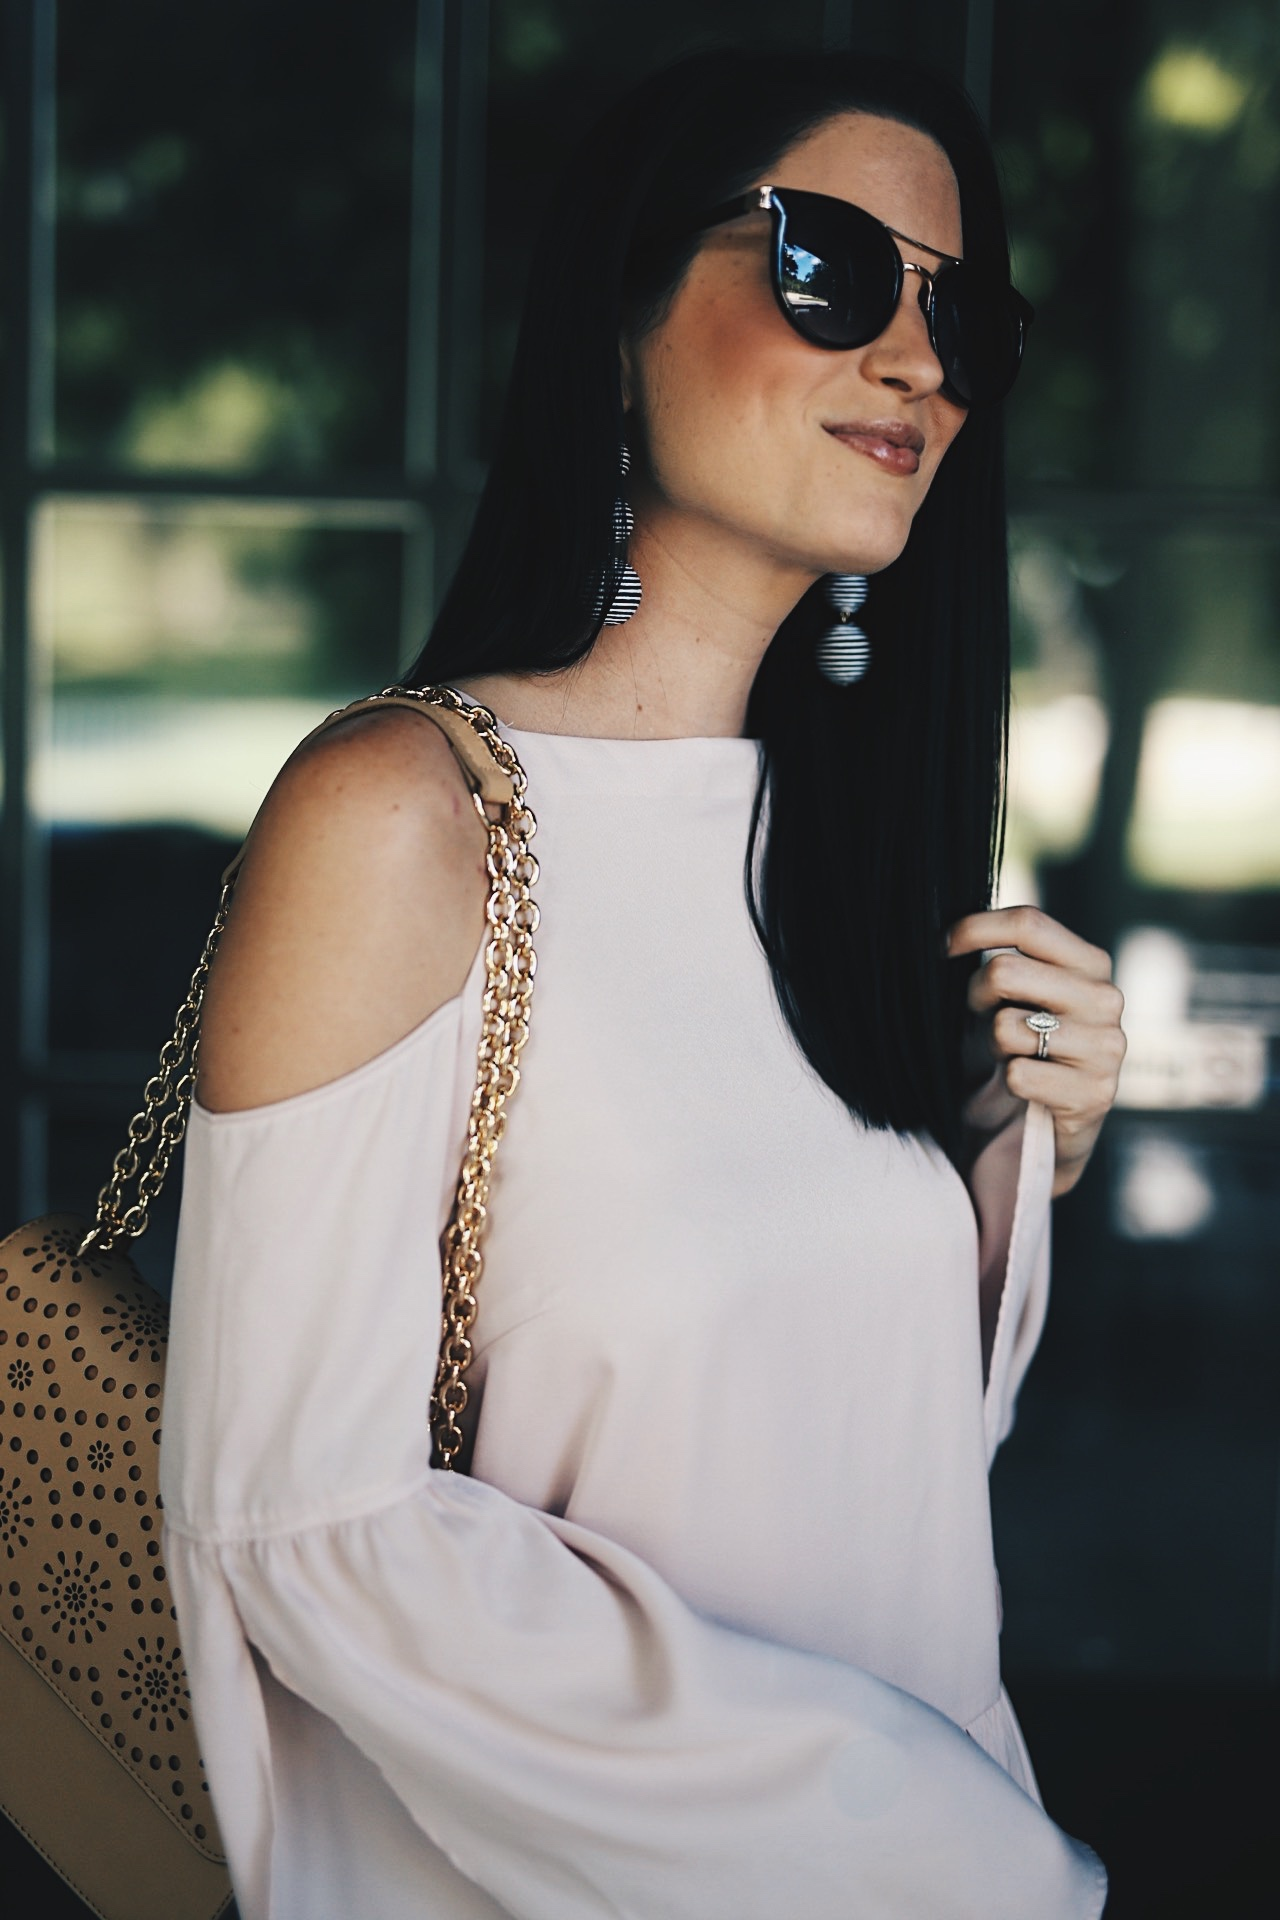 DTKAustin shares one of her favorite spring and summer looks from Nordstrom. White distressed denim and a pink silk top make the perfect outfit. Click for more details and photos!   spring fashion   spring style   dress for spring   what to wear for spring   warm weather fashion   spring fashion tips   how to style a silk top   spring style ideas   spring outfit ideas    Dressed to Kill